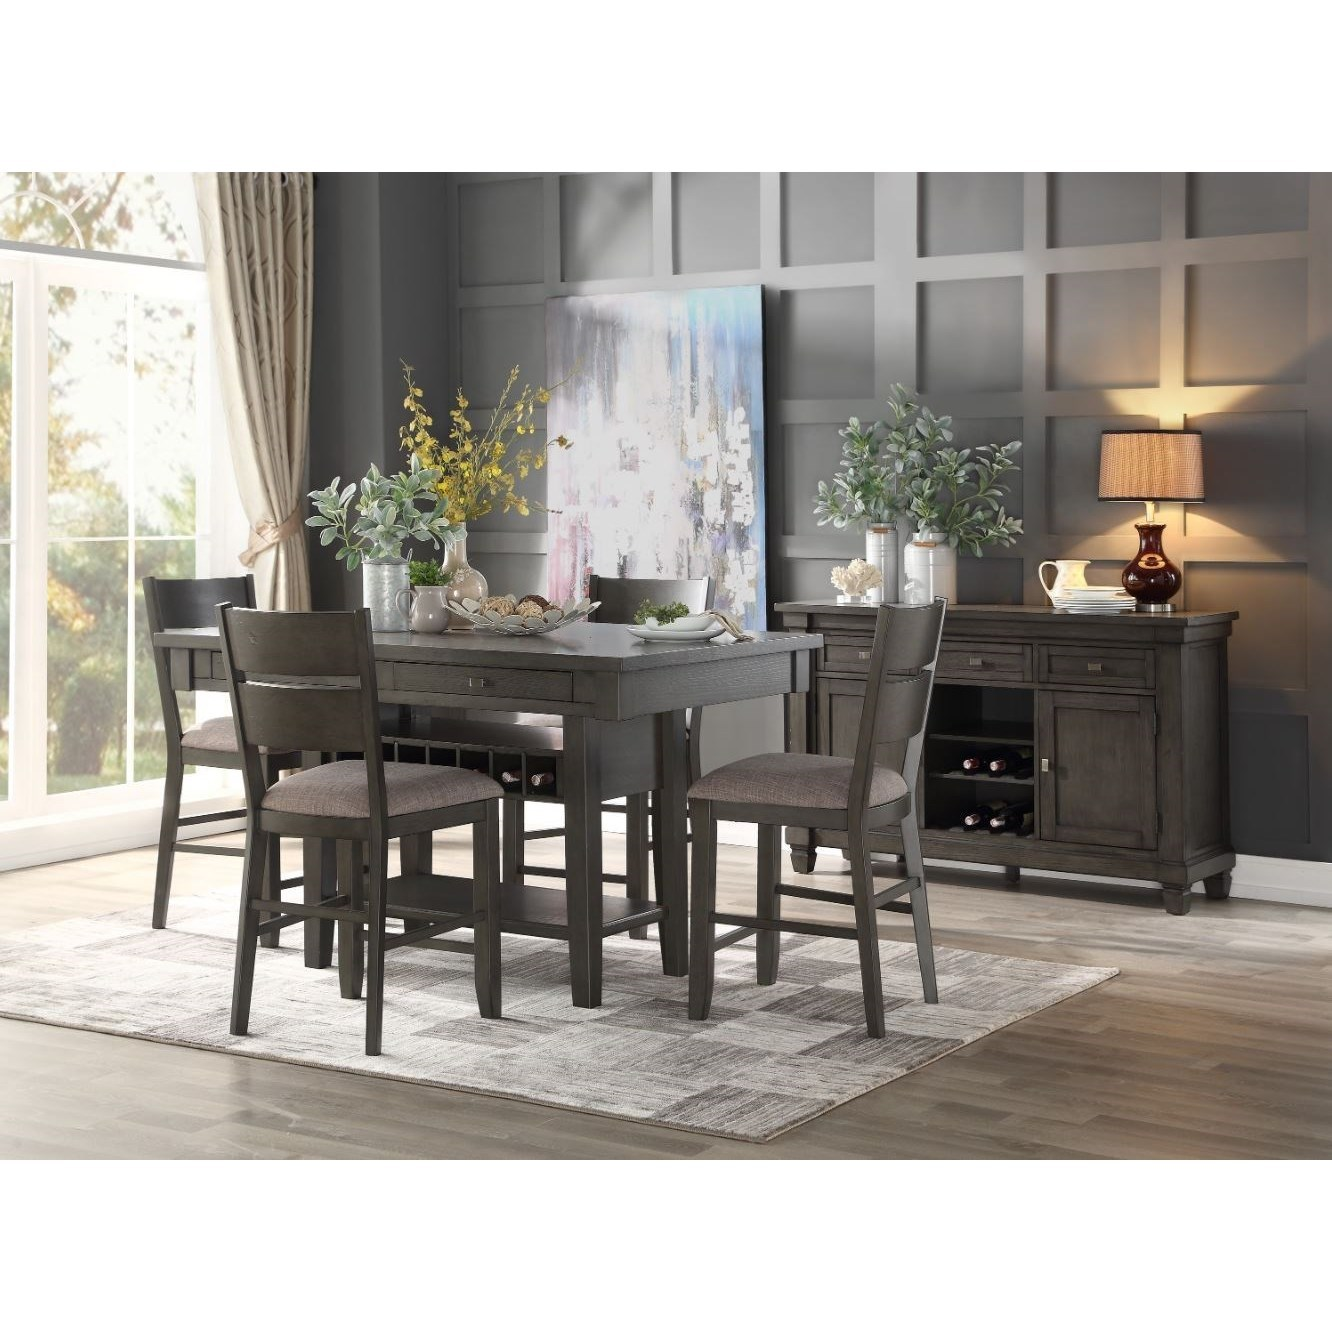 Baresford Casual Dining Room Group by Homelegance at Rife's Home Furniture